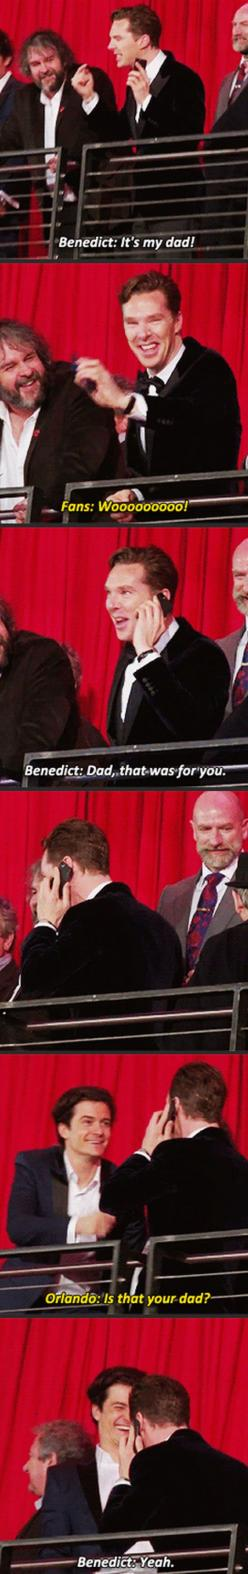 Benedict Cumberbatch and his dad   --- I love this.  ----Haha bet Timothy Carlton loved that. I love the shots of Martin talking to Ben's dad on the phone and Ben smiling :D: Funny Pics, Funny Pictures, Funnypictures, Funny Images, Funny Quotes, Funny